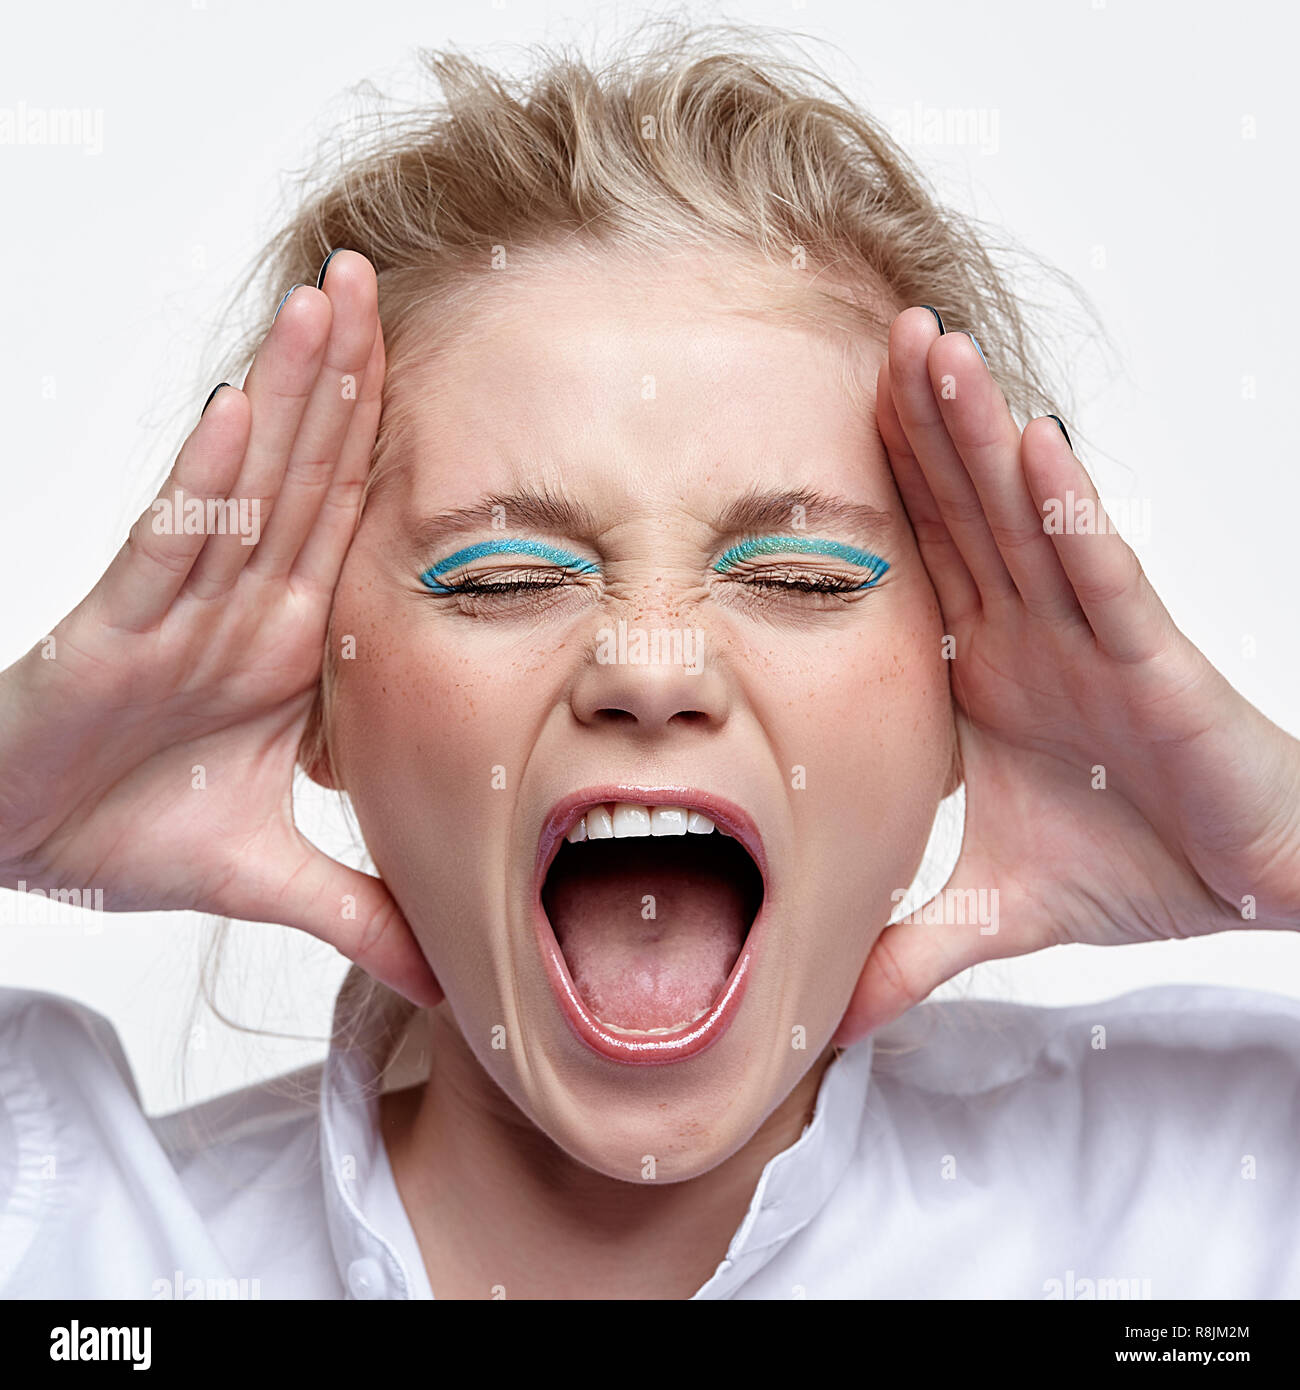 Emotional portrait of a young blonde woman on gray background. Female put palms to face and scream loudly - Stock Image